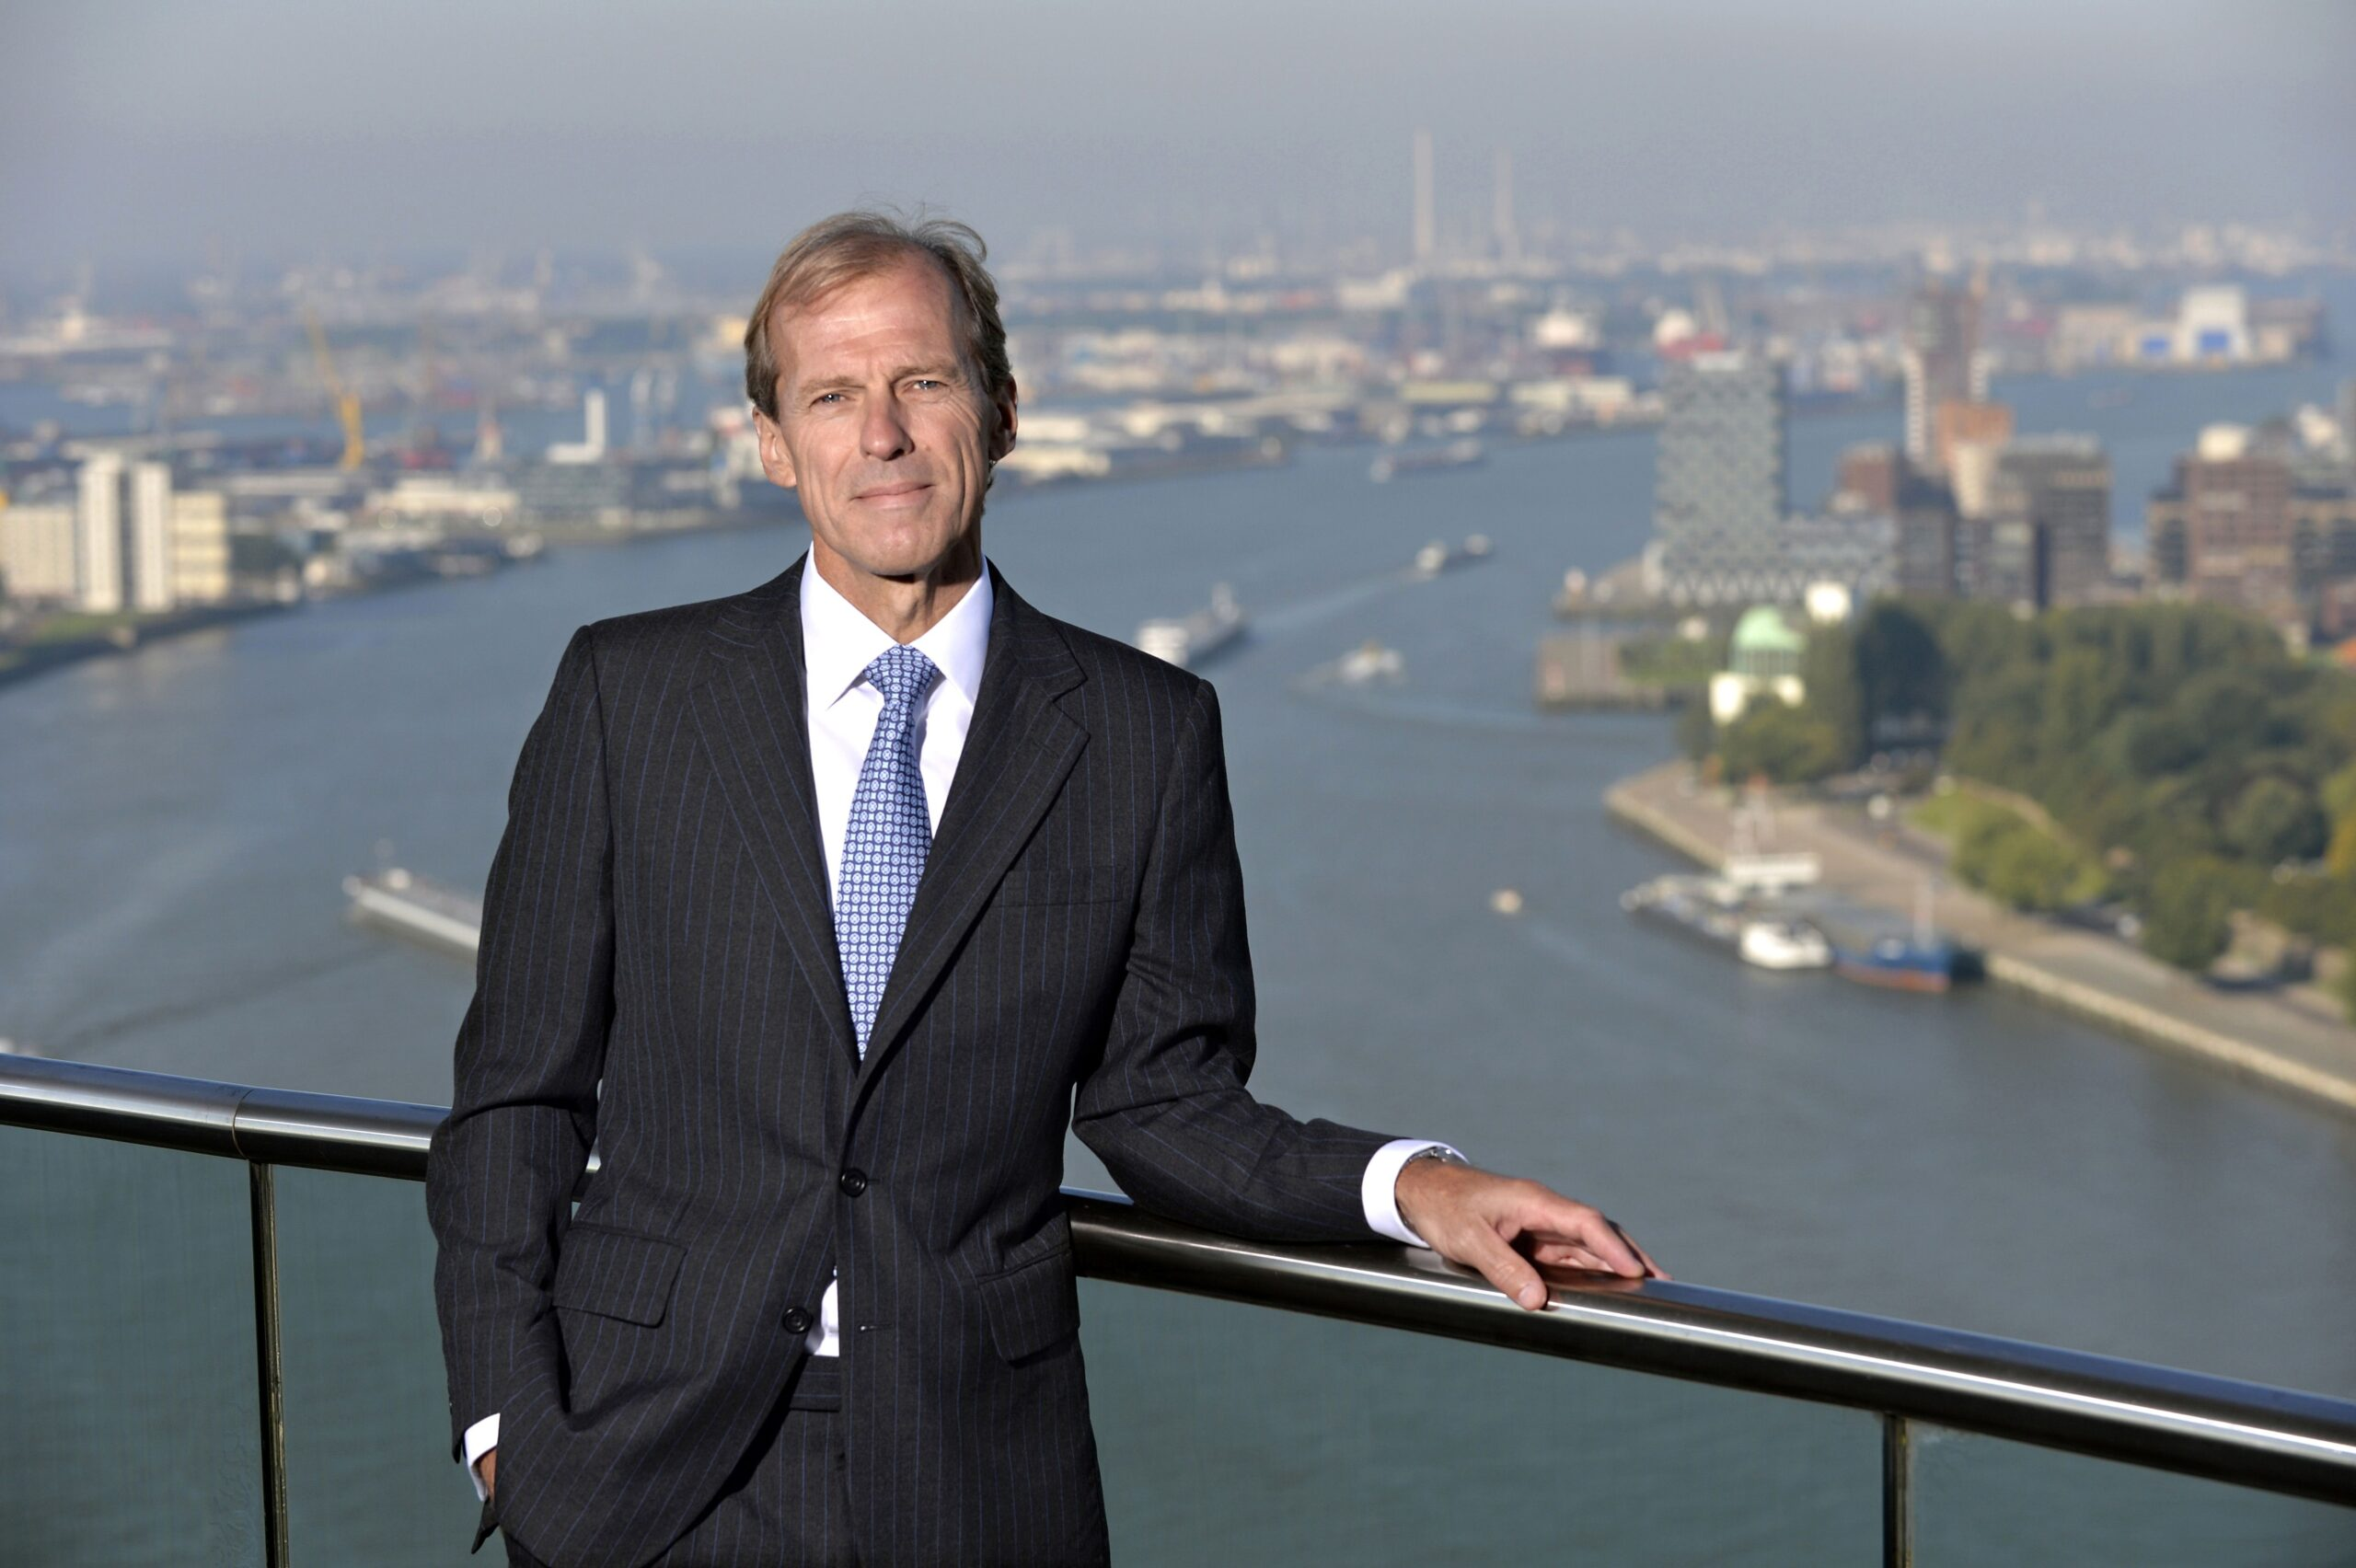 CEO Port of Rotterdam: There will be opportunities after corona